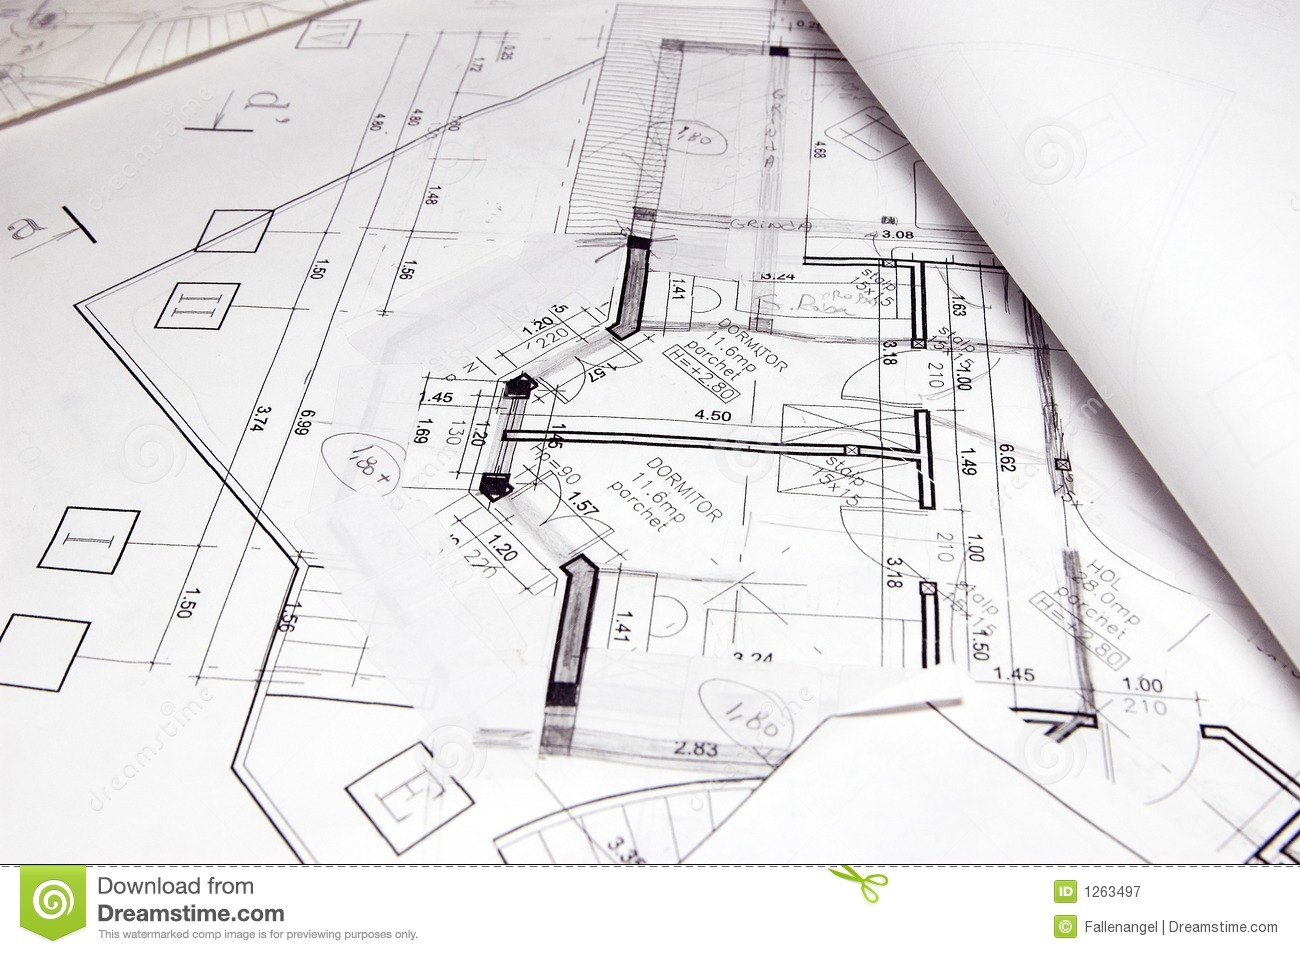 House Plans 1263497 House Plans Royalty Free Stock Photography Image 1263497 On Free Stock Home Plans